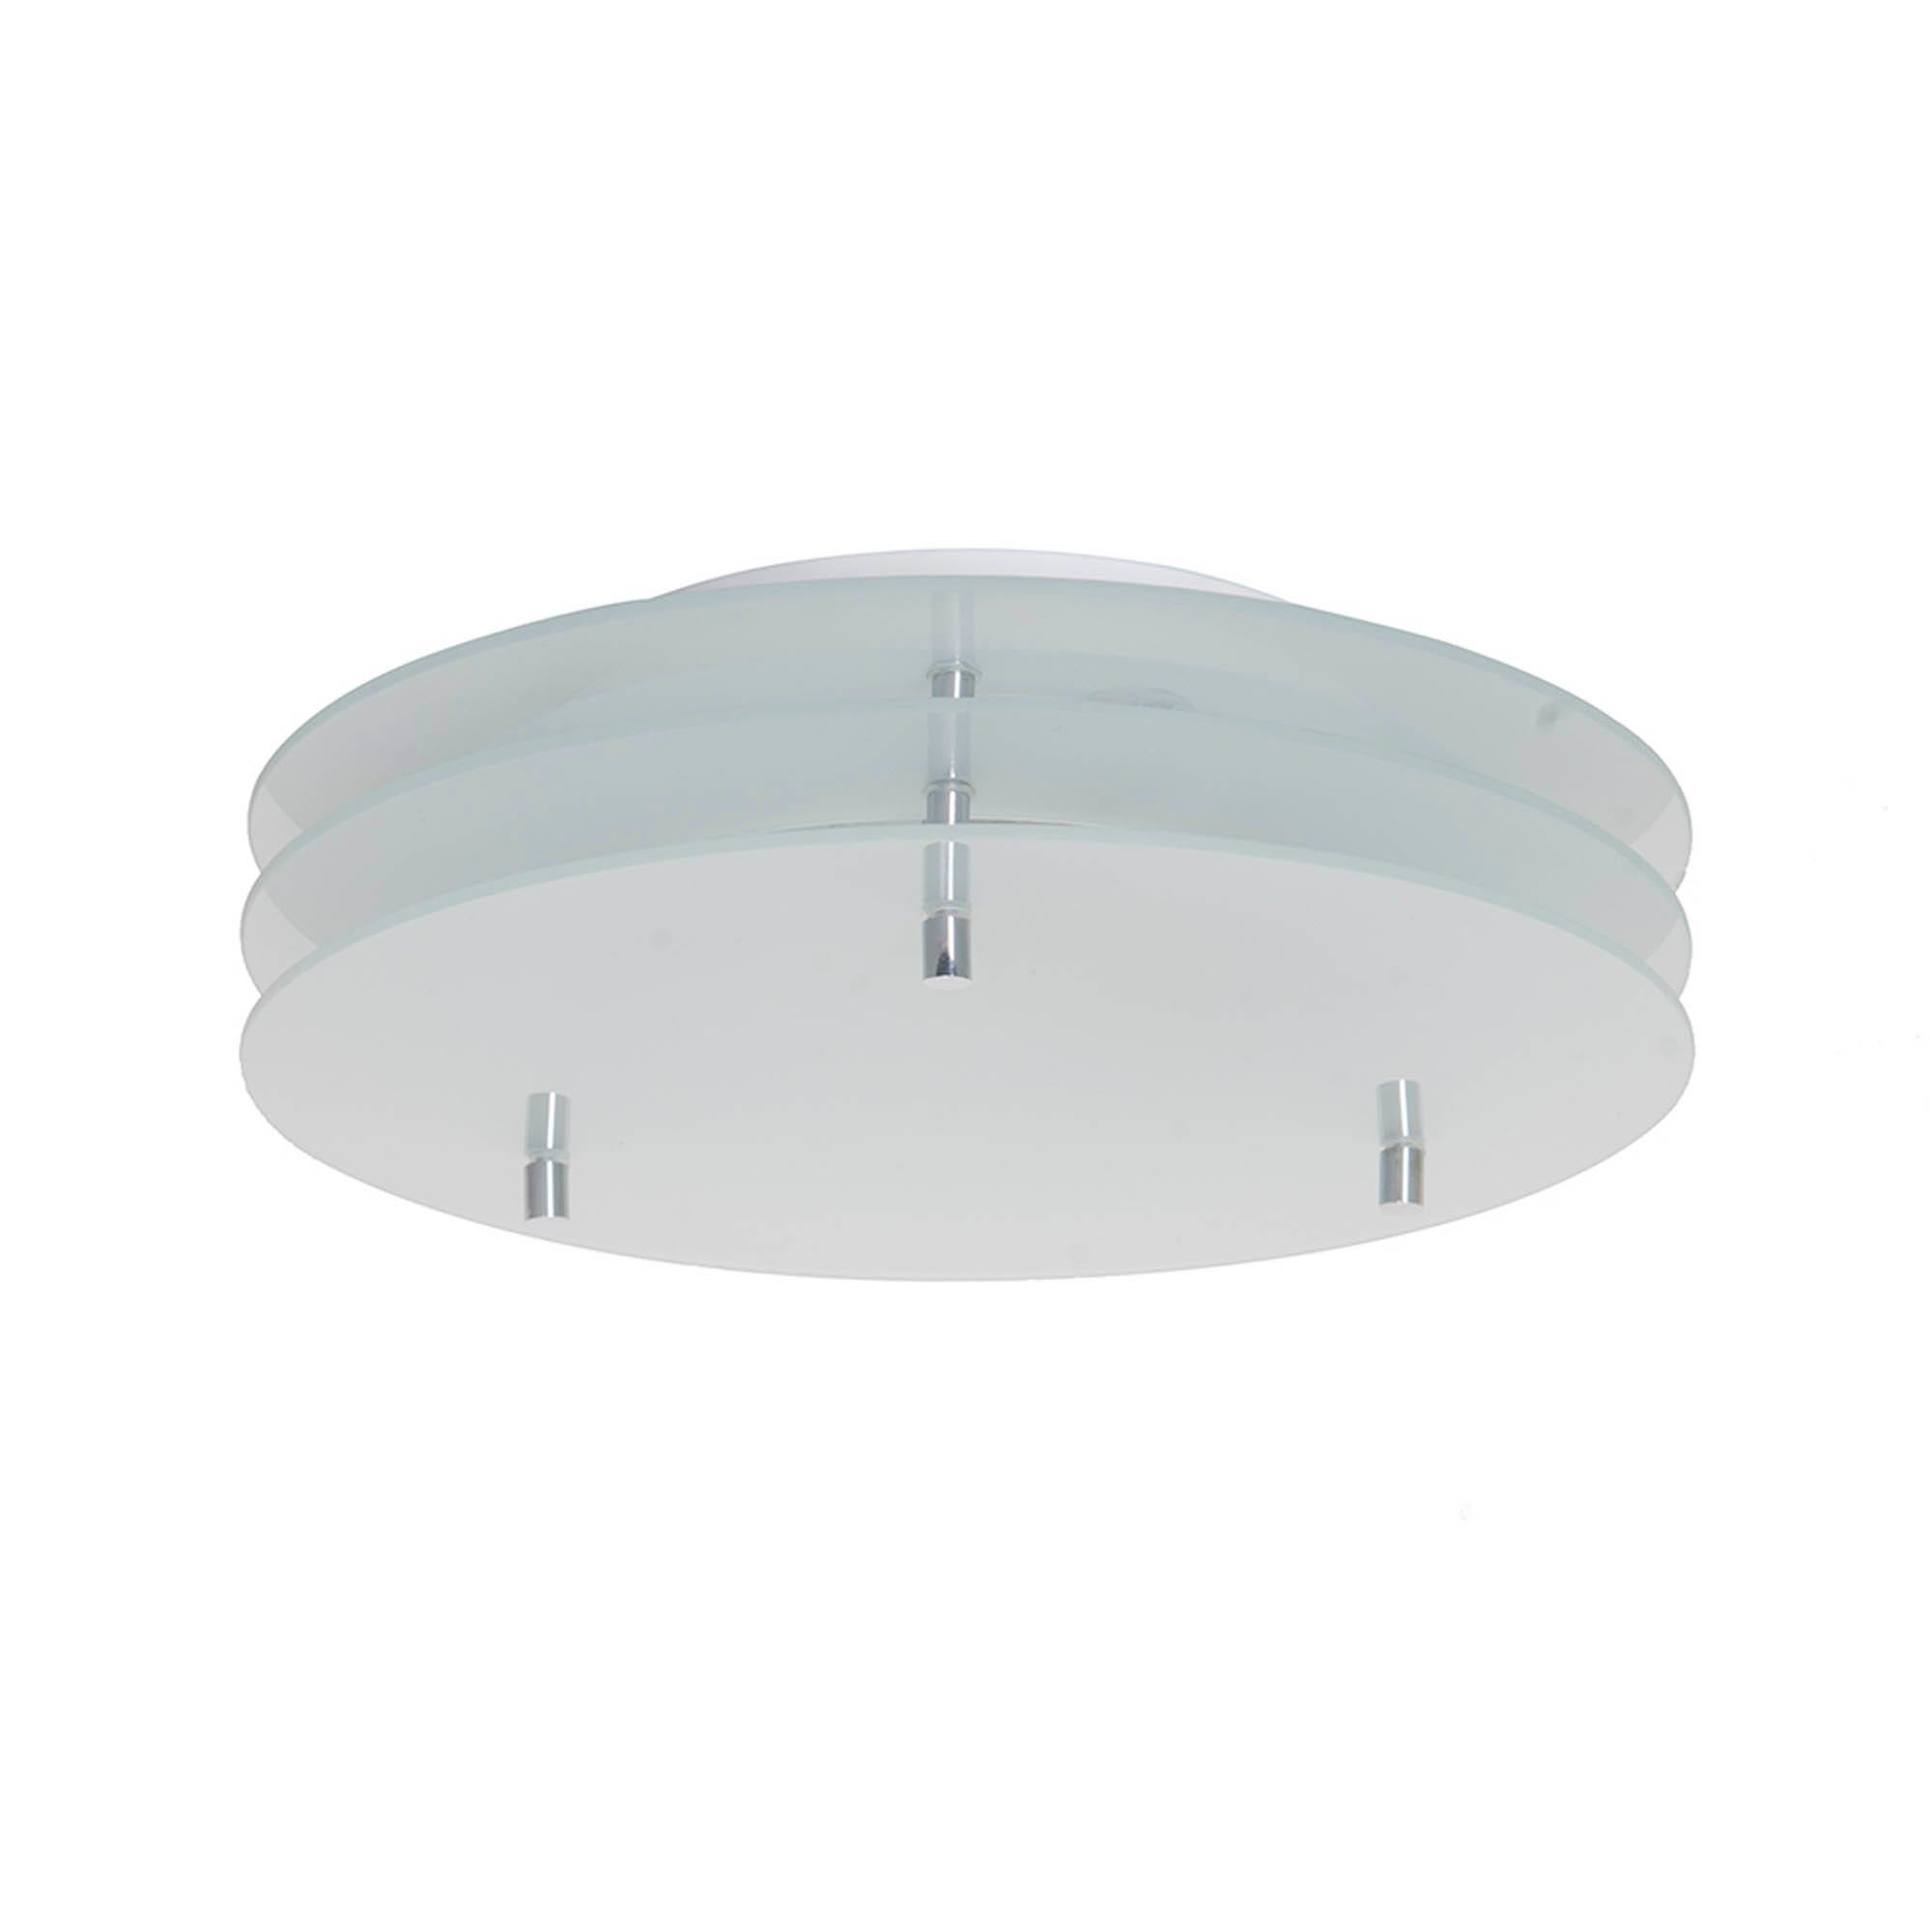 Compare prices for Litecraft LA Frosted Glass Ceiling Light